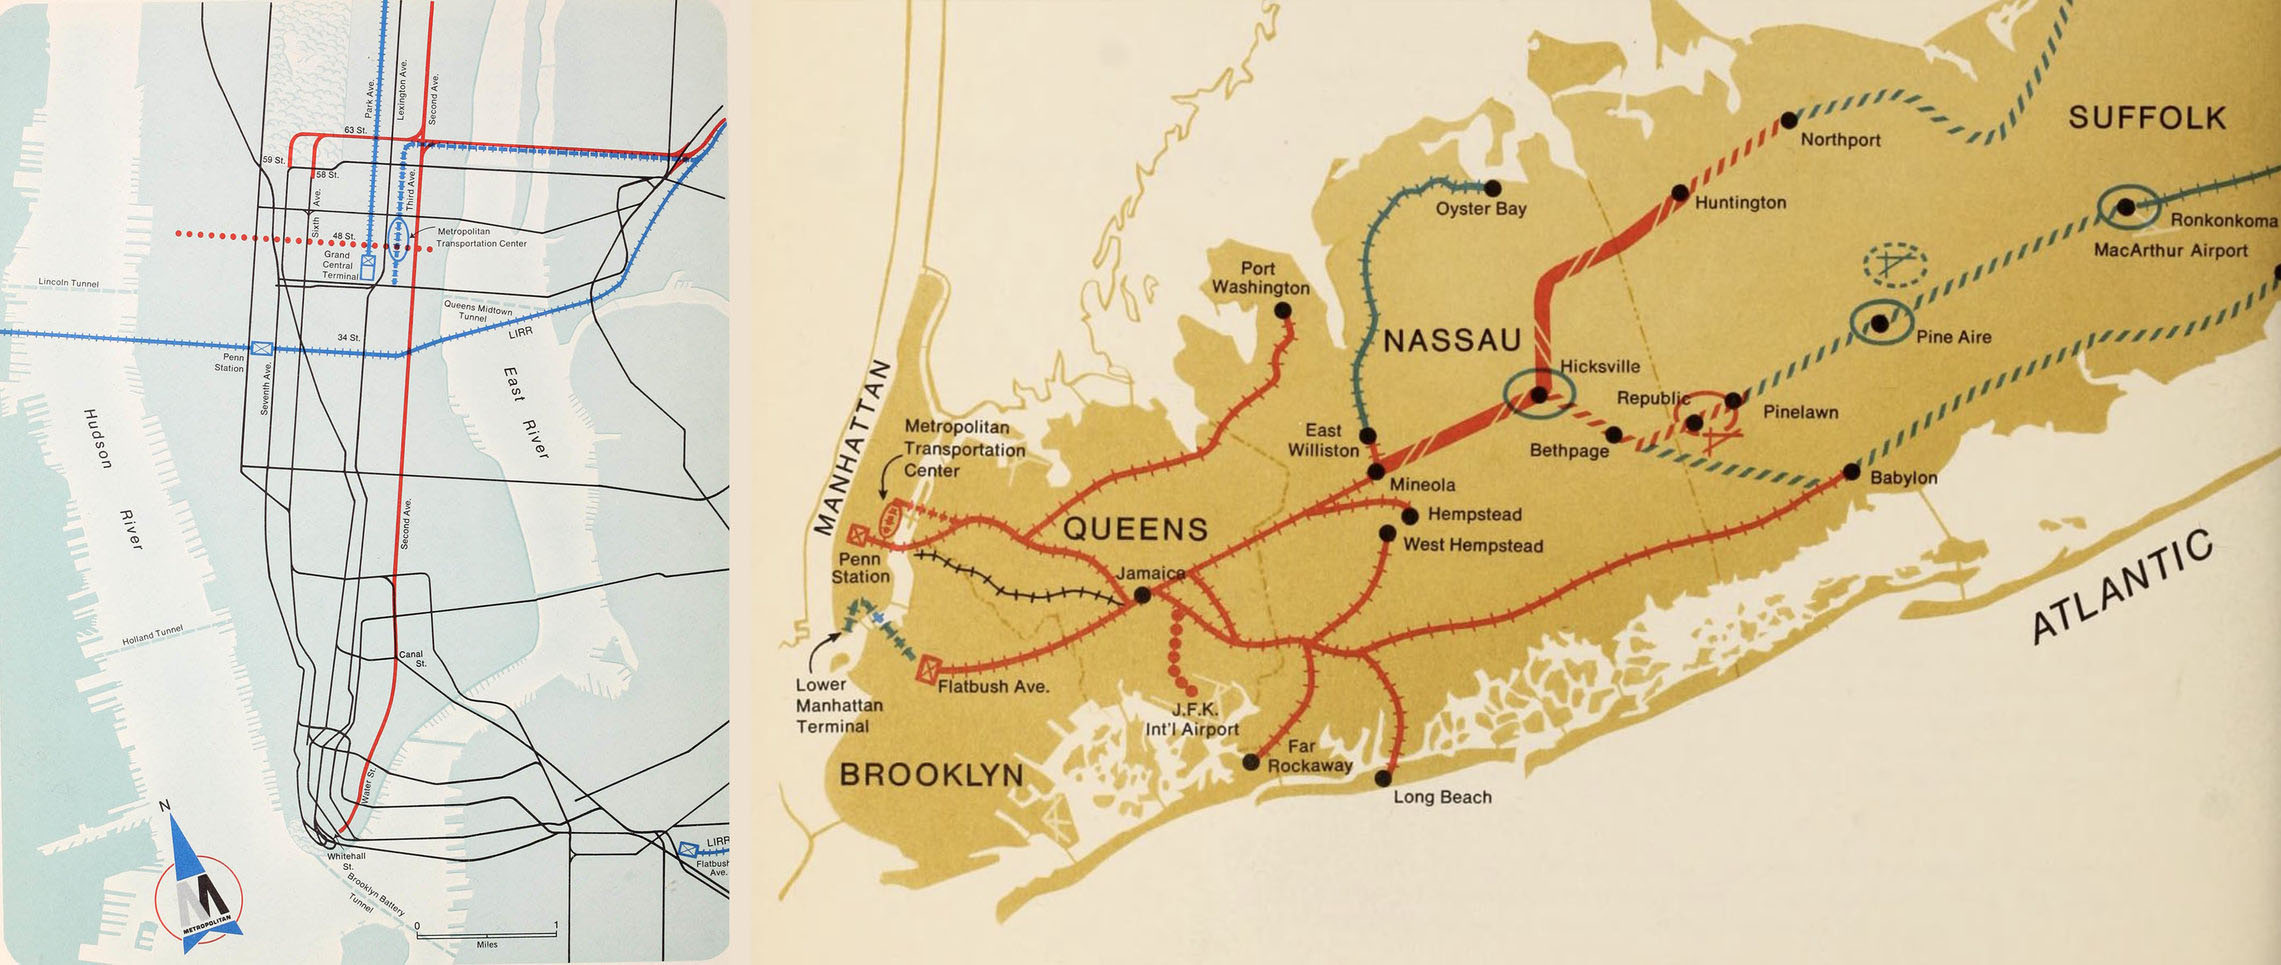 Planning map showing the convergence of LIRR lines in Queens and the proposed Metropolitan Transportation Center on Thirds Avenue and 48th Street. Metropolitan Commuter Transportation Authority, 1968.